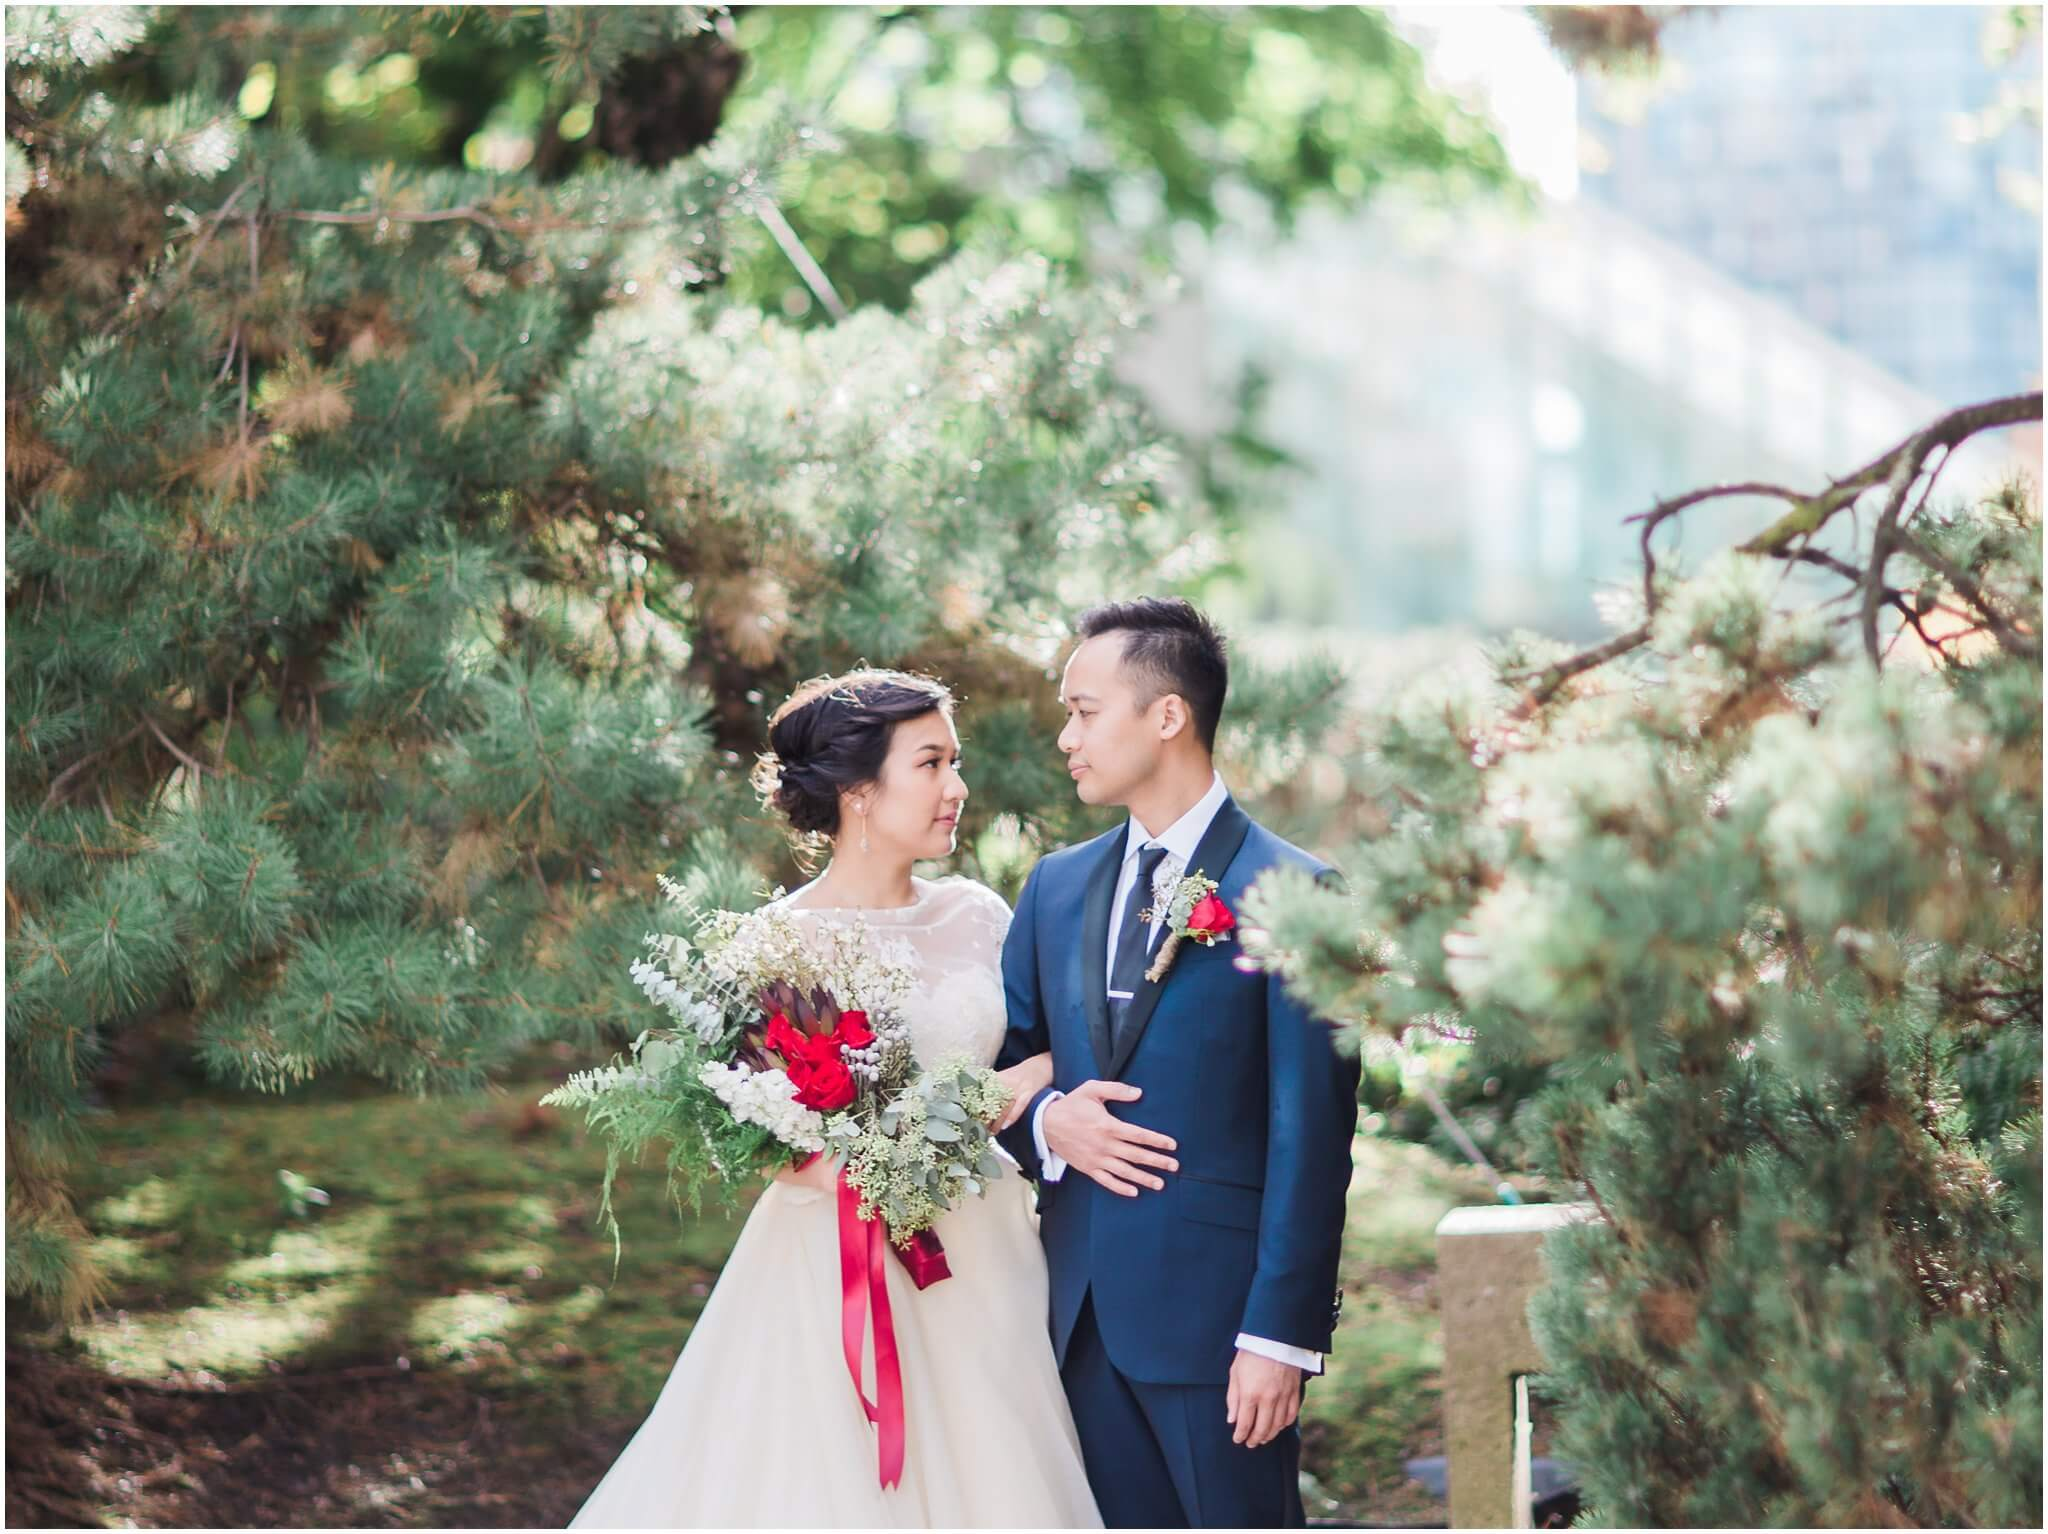 Pacific Northwest inspired wedding at Brix and Mortar Restaurant in Downtown Vancouver